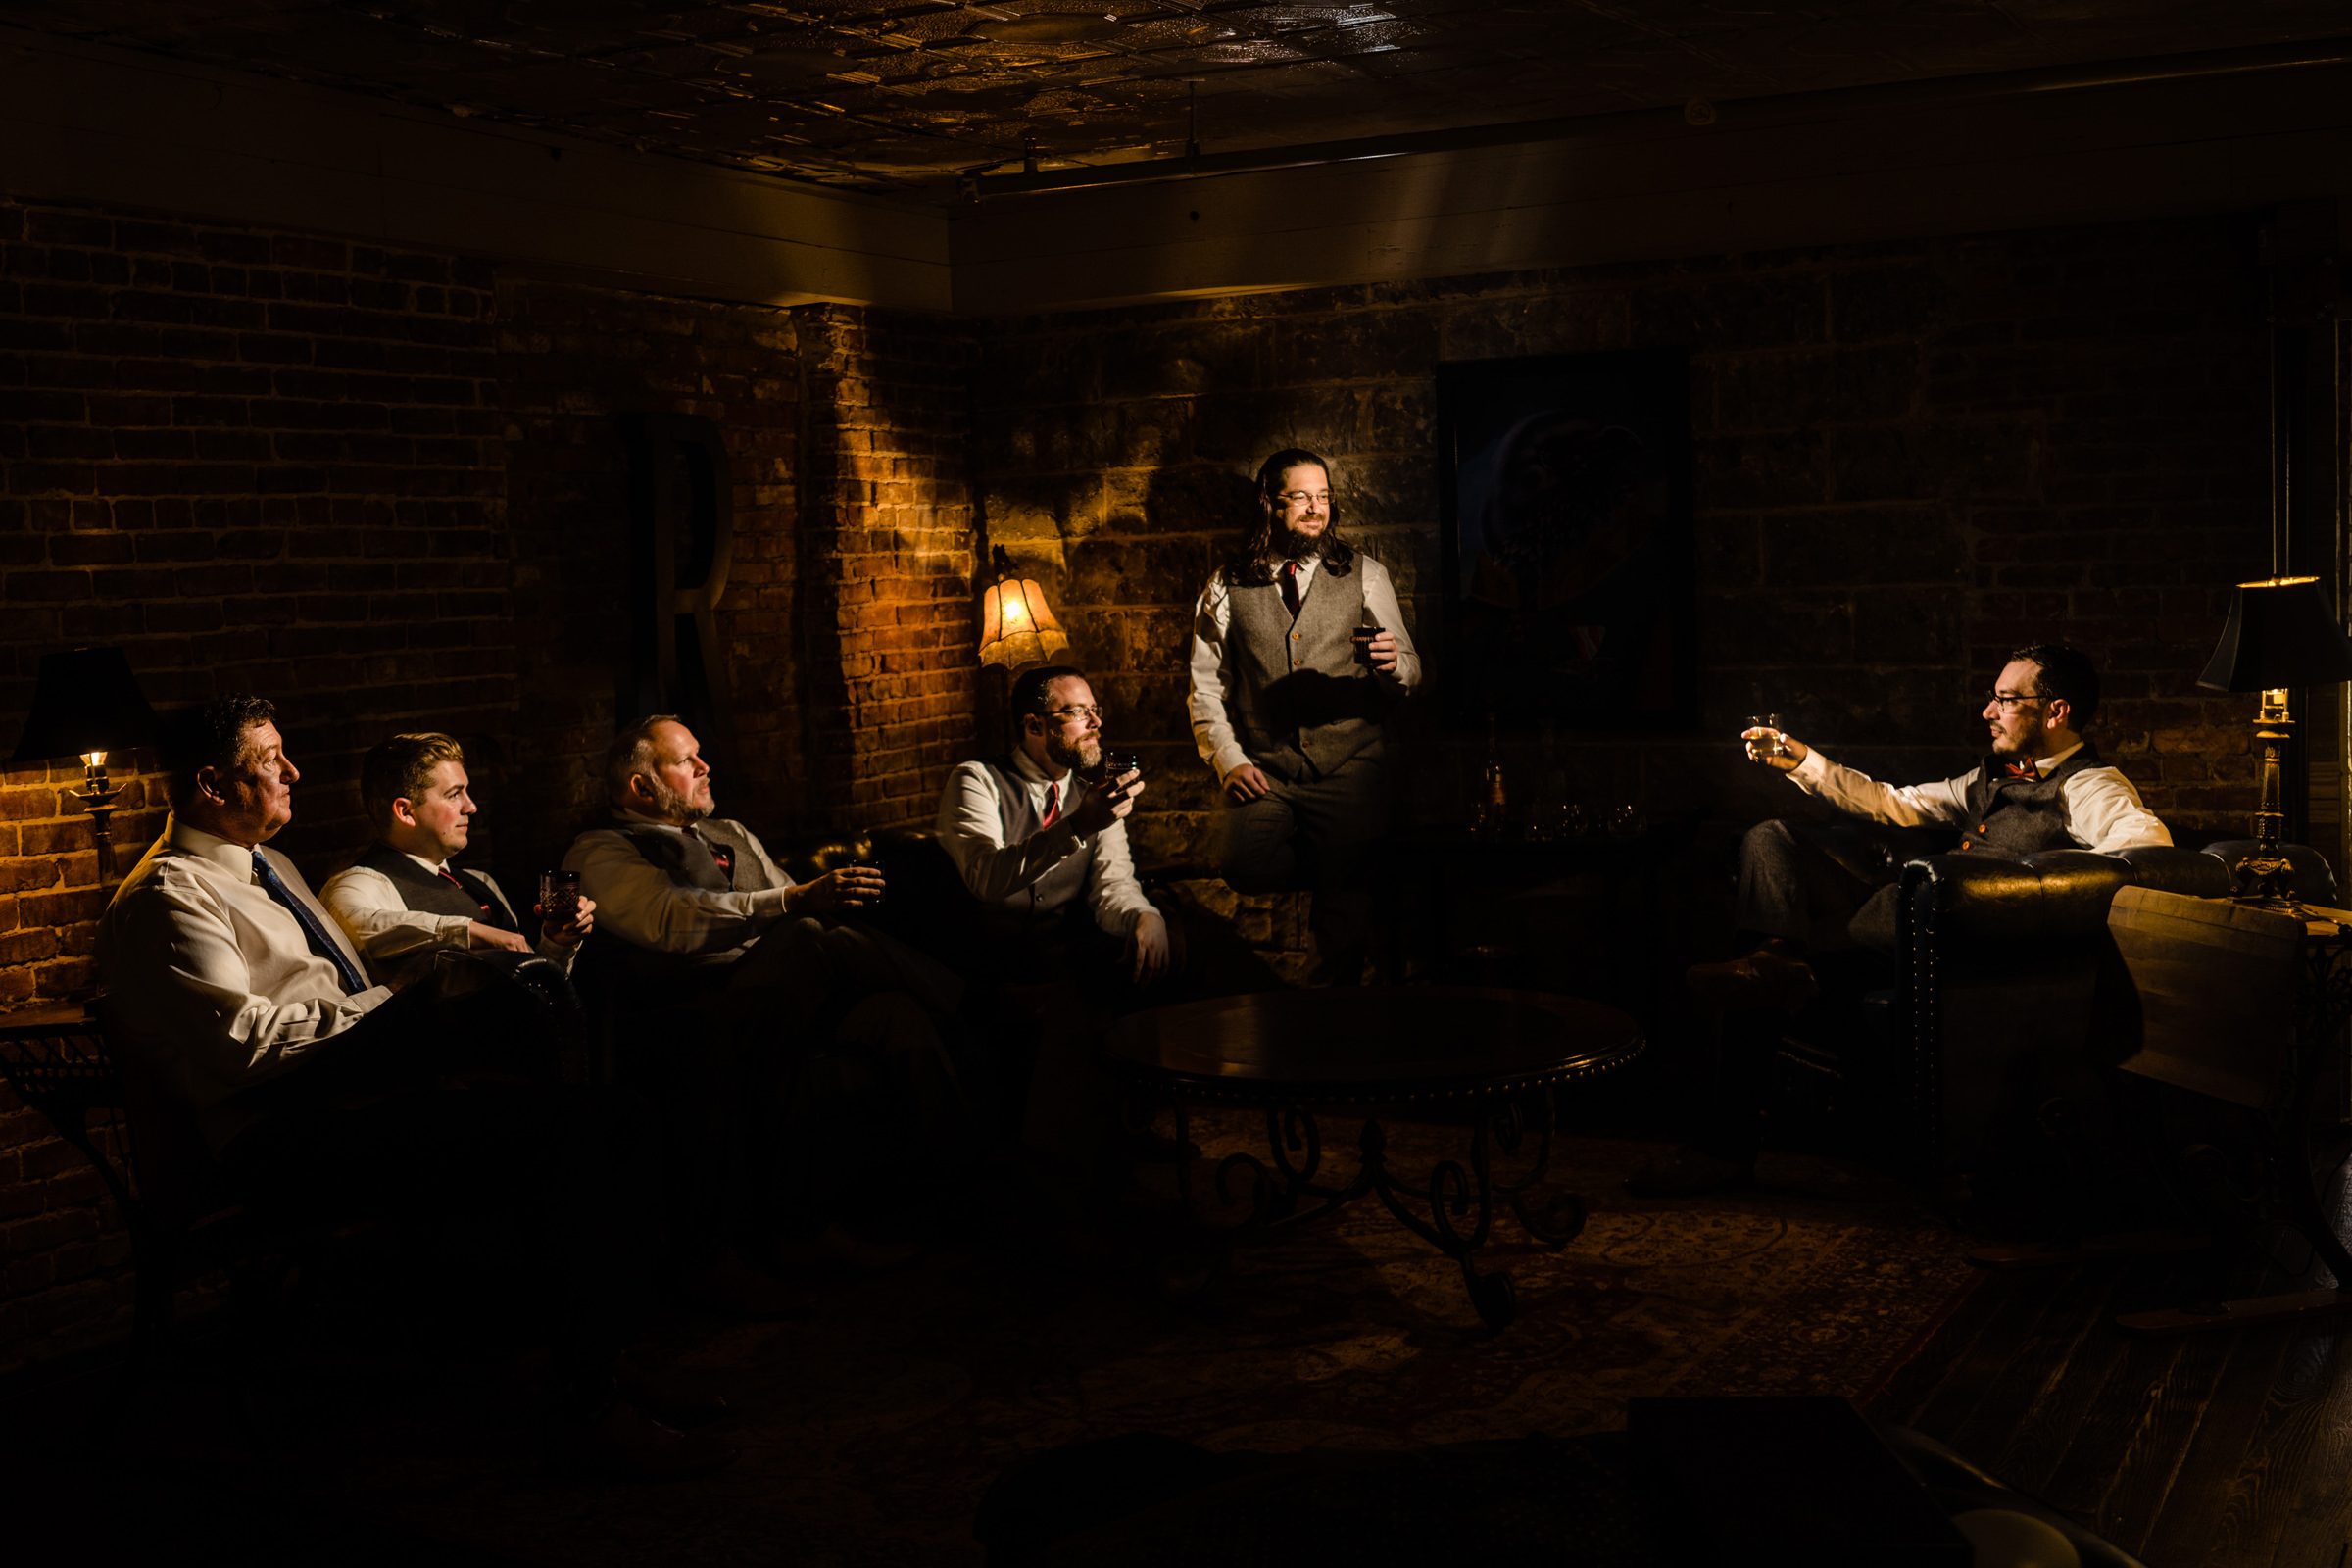 groom and groomsmen hanging together in brick room-Arkansas photographer- photo by Vinson Images